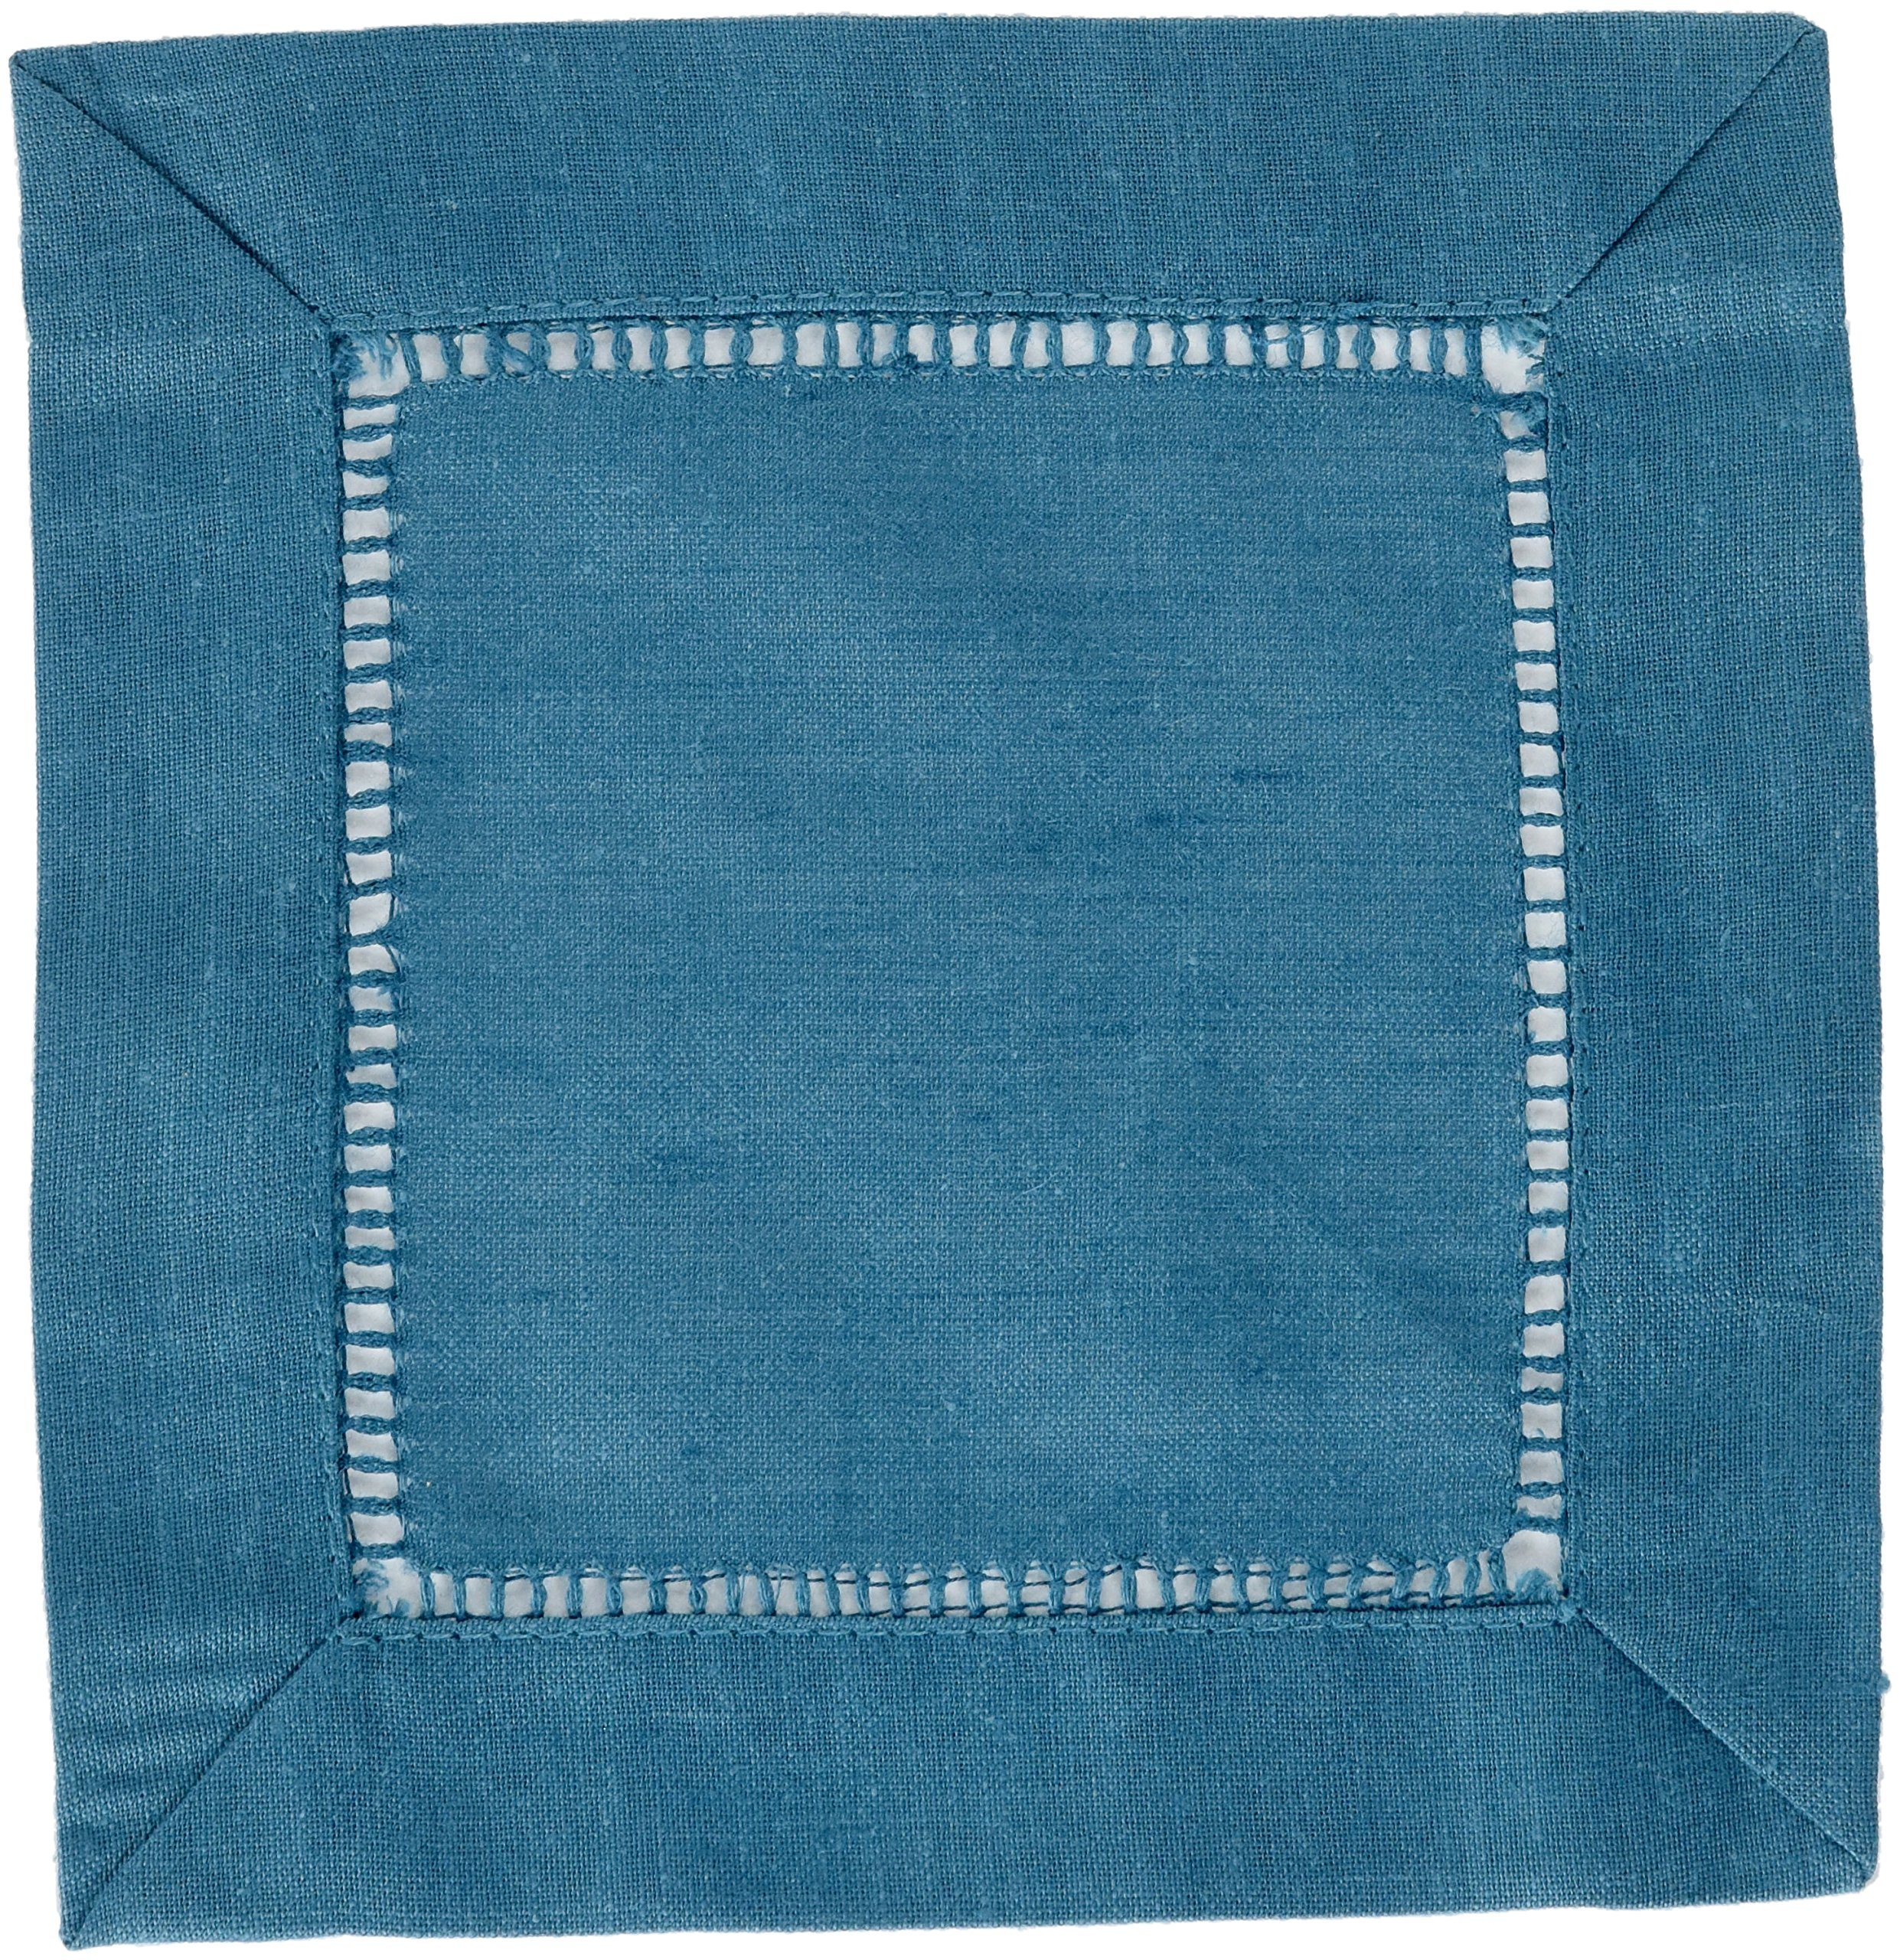 SARO LIFESTYLE 6100C.IN6S 24/7 Everyday Collection Hemstitched Cocktail Napkin (Set of 12), 6'' Square, Indigo